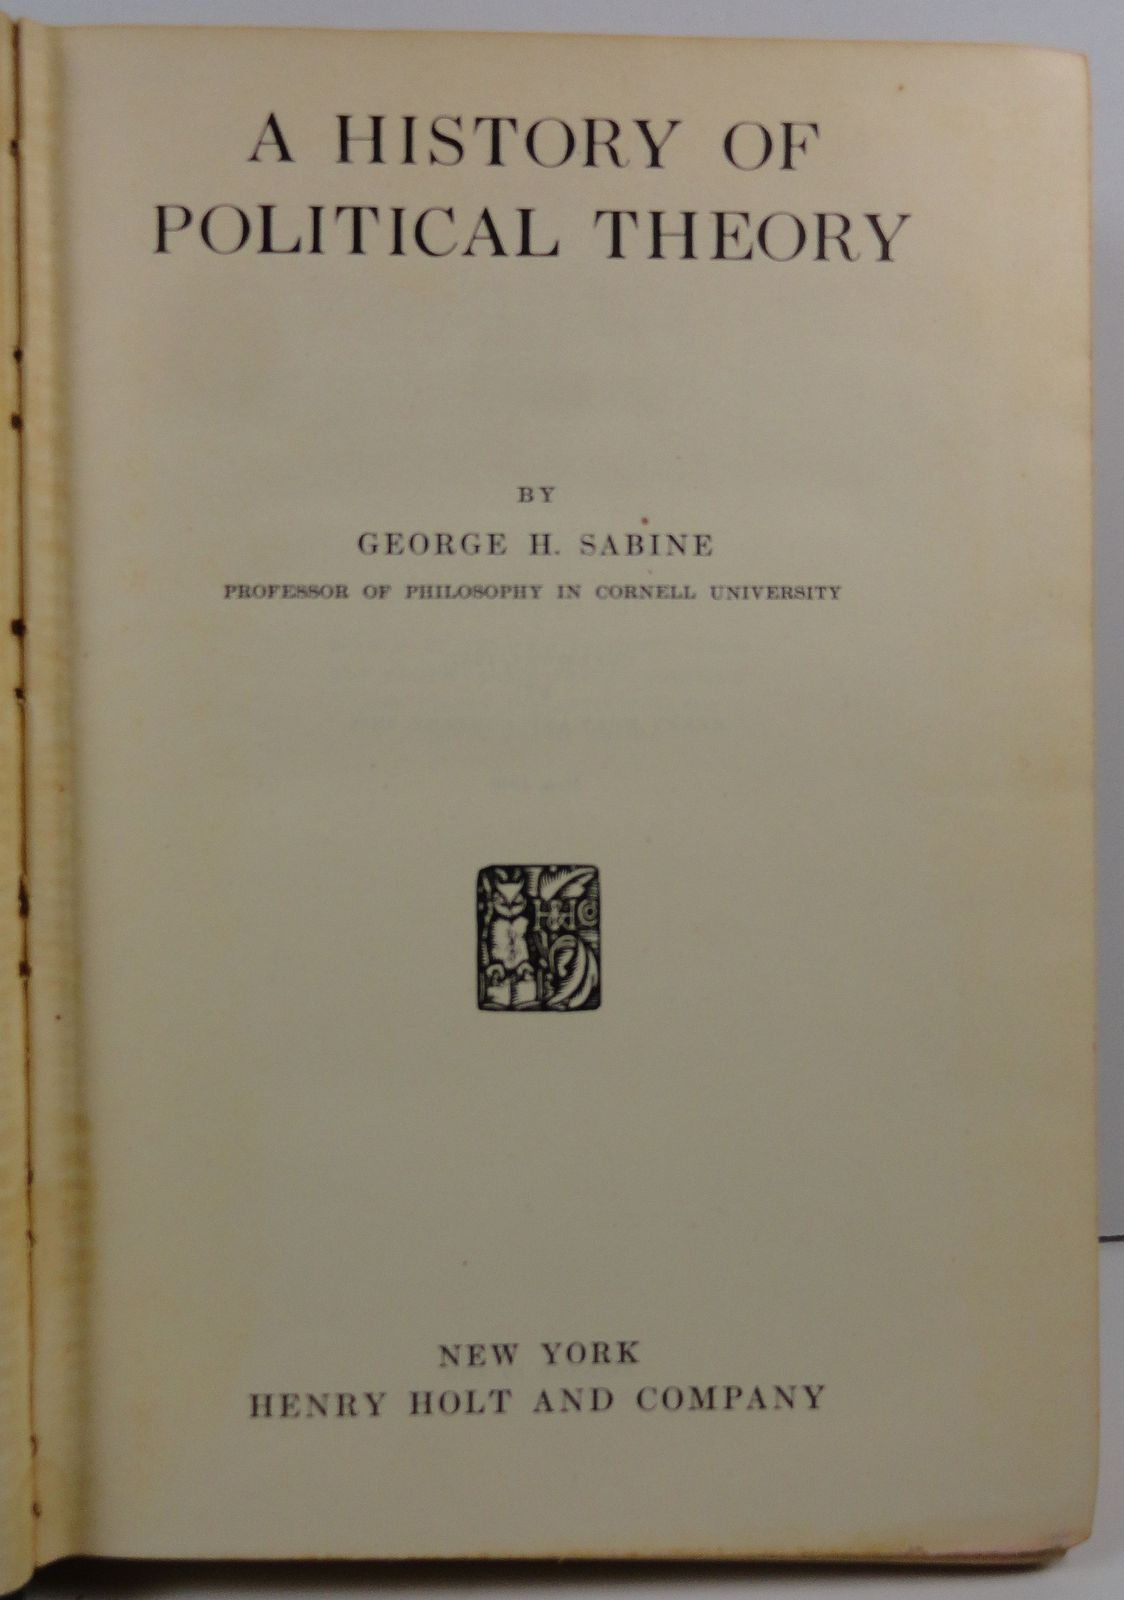 A History of Political Theory by George H. Sabine 1946